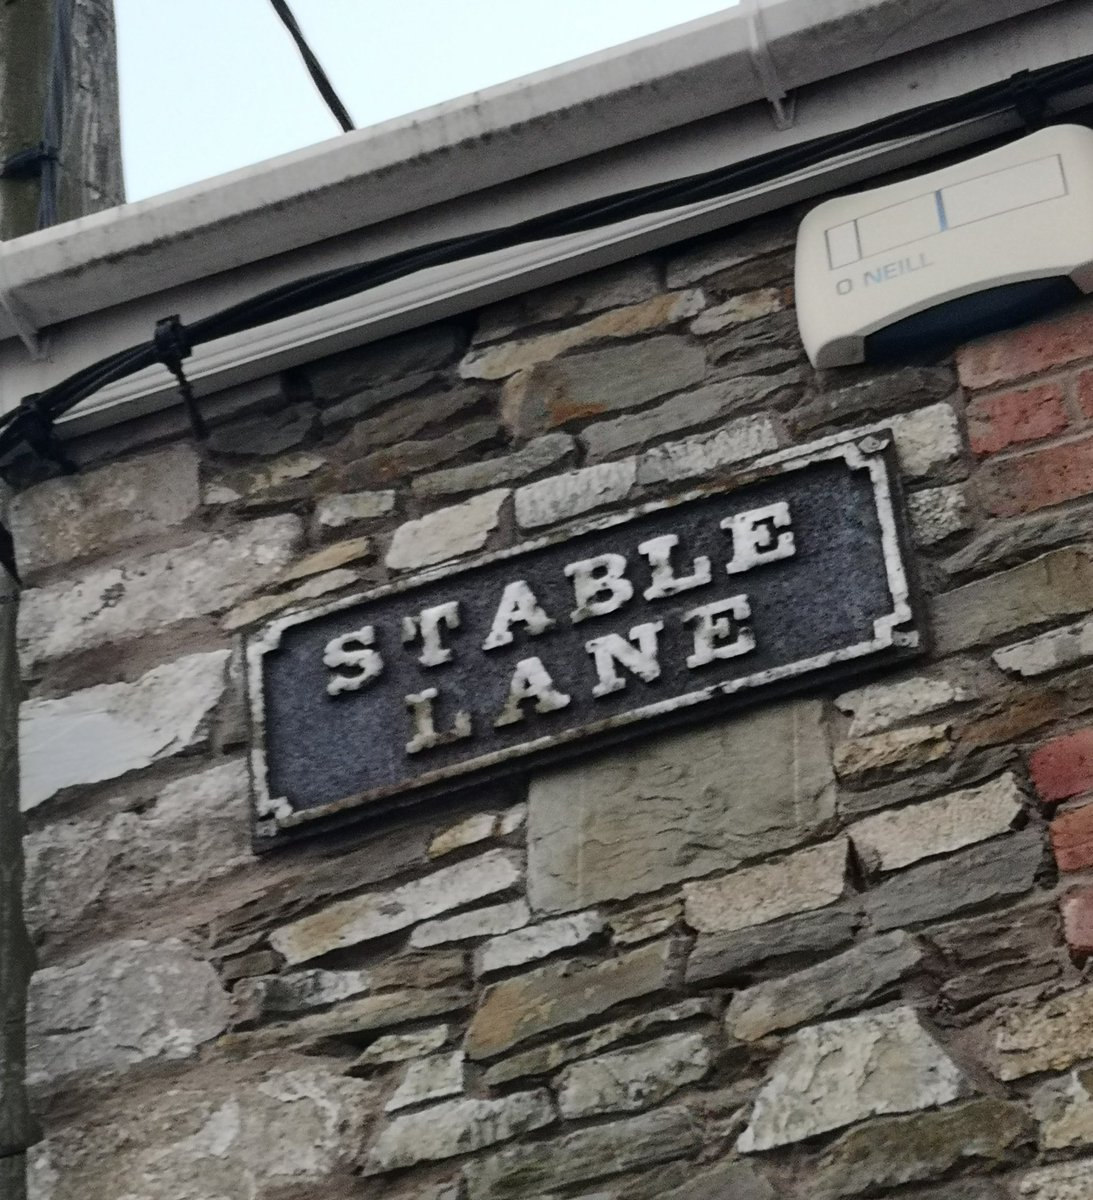 STREET PHOTOGRAPHY CORK PHOTO COPYRIGHT BILLY macGill 27/11 /20. The Places of Cork... Stable Lane off Cotter Street between Copley Street and the South Terrace Cork. #corkhidden #Corkhistory #cba #failteireland #irishexaminer #environment #architecture #cork #corkcitycouncil https://t.co/T4ASUWHTpM